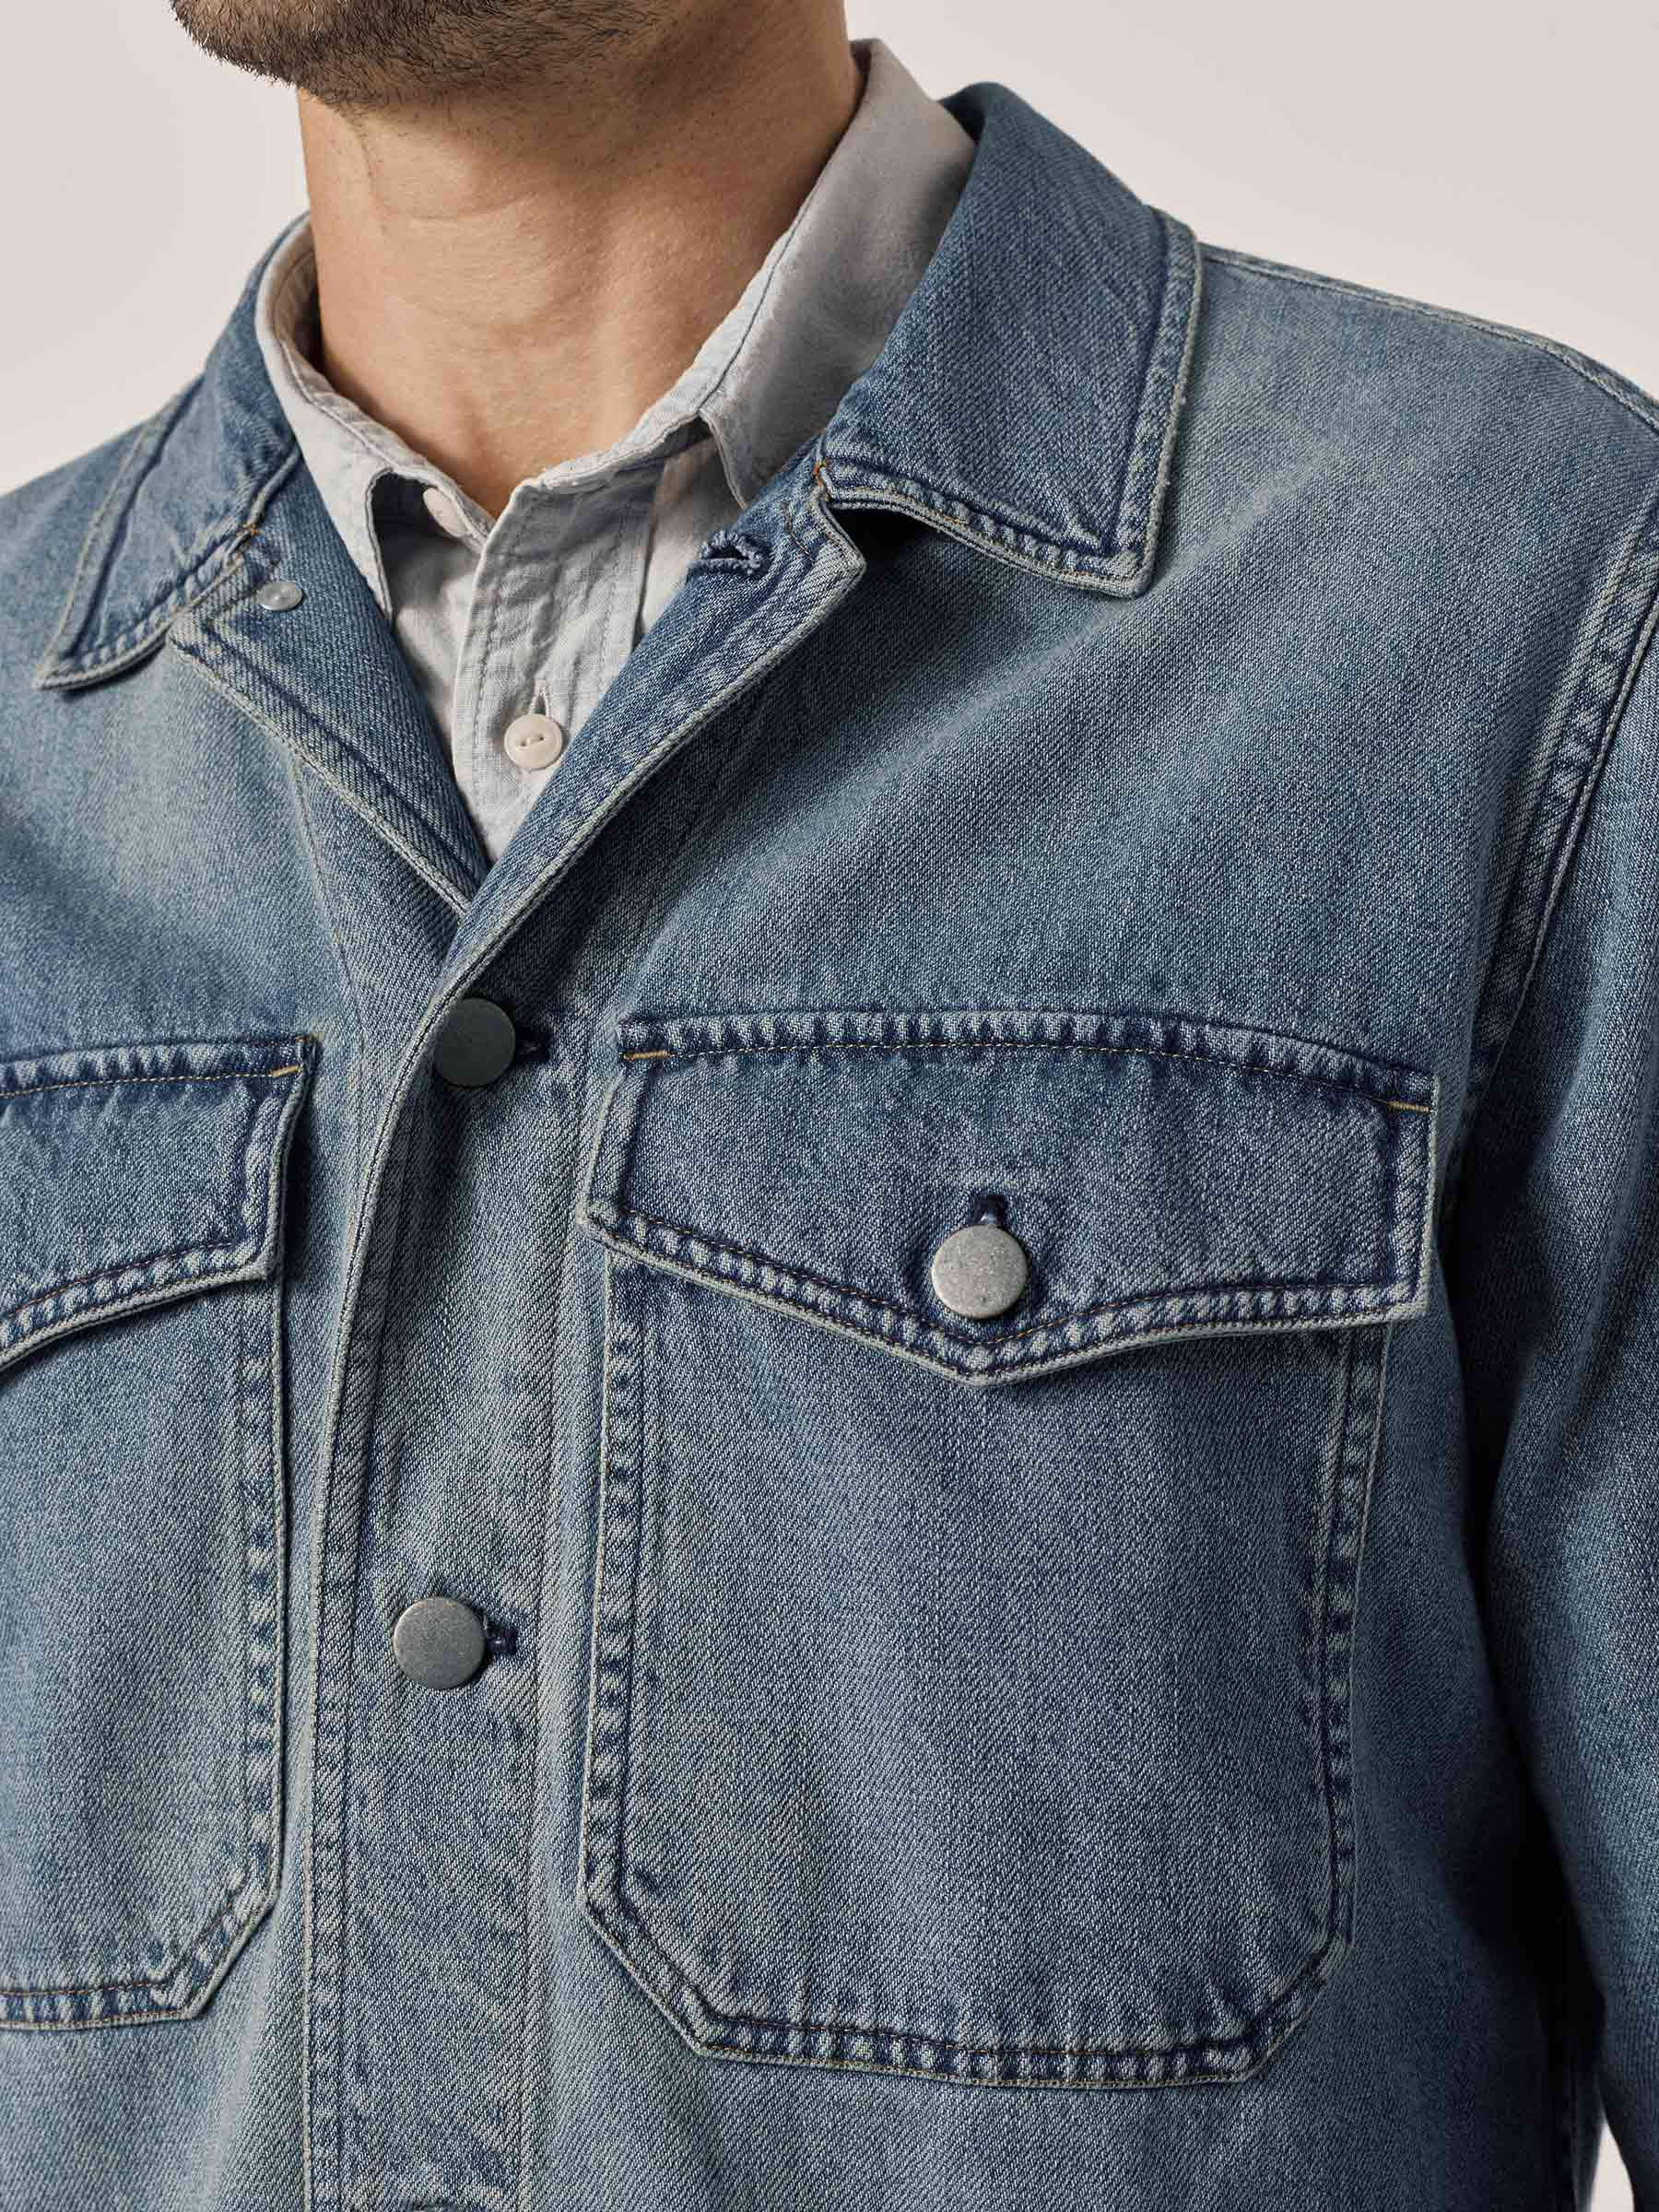 Buck Mason - L004 Light Wash Denim Two Pocket Field Shirt